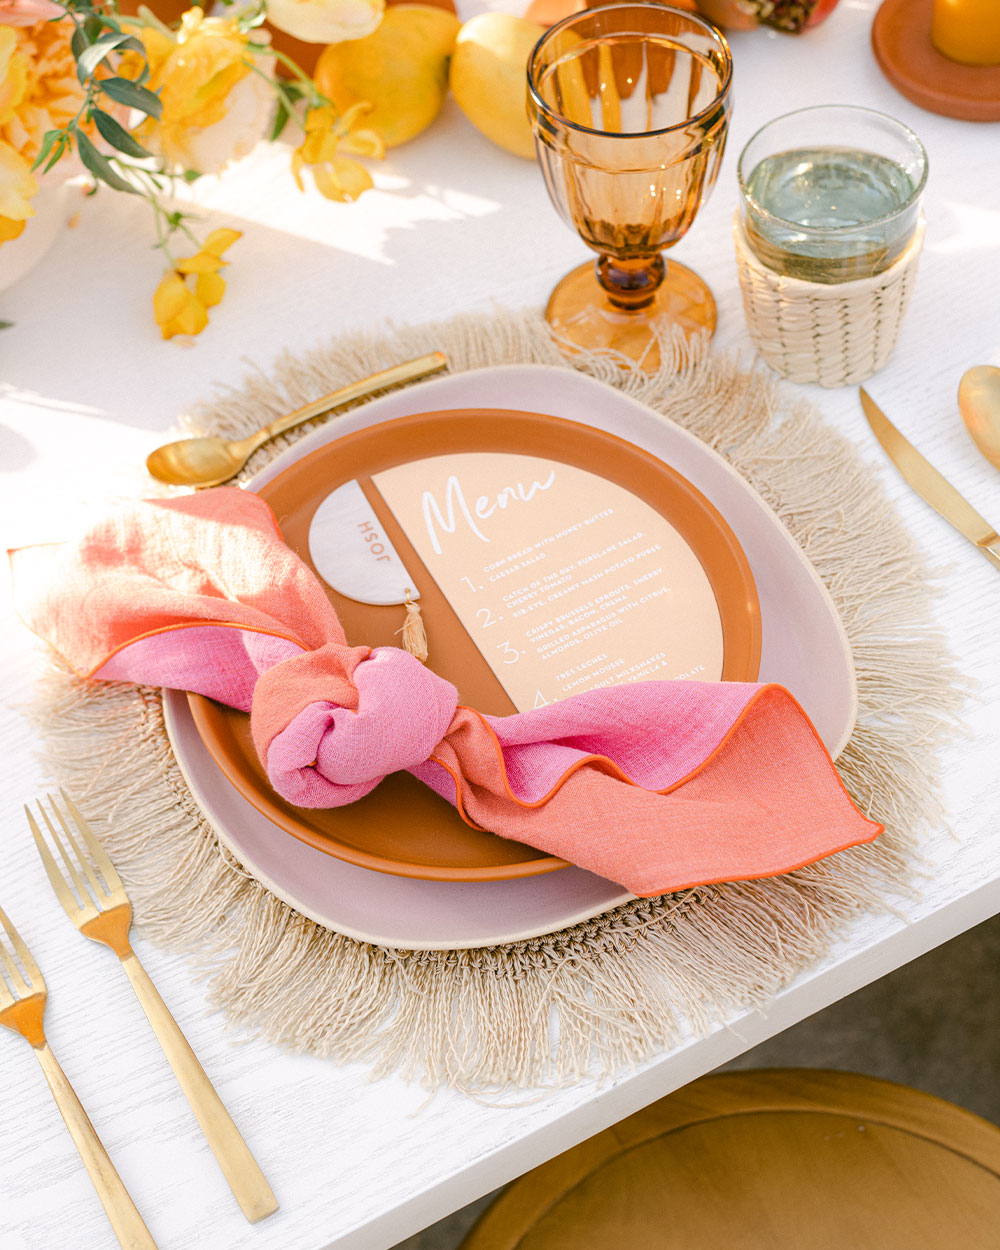 atelier saucier nikki reed's wedding in todos Santos Mexico pink and orange linen napkins